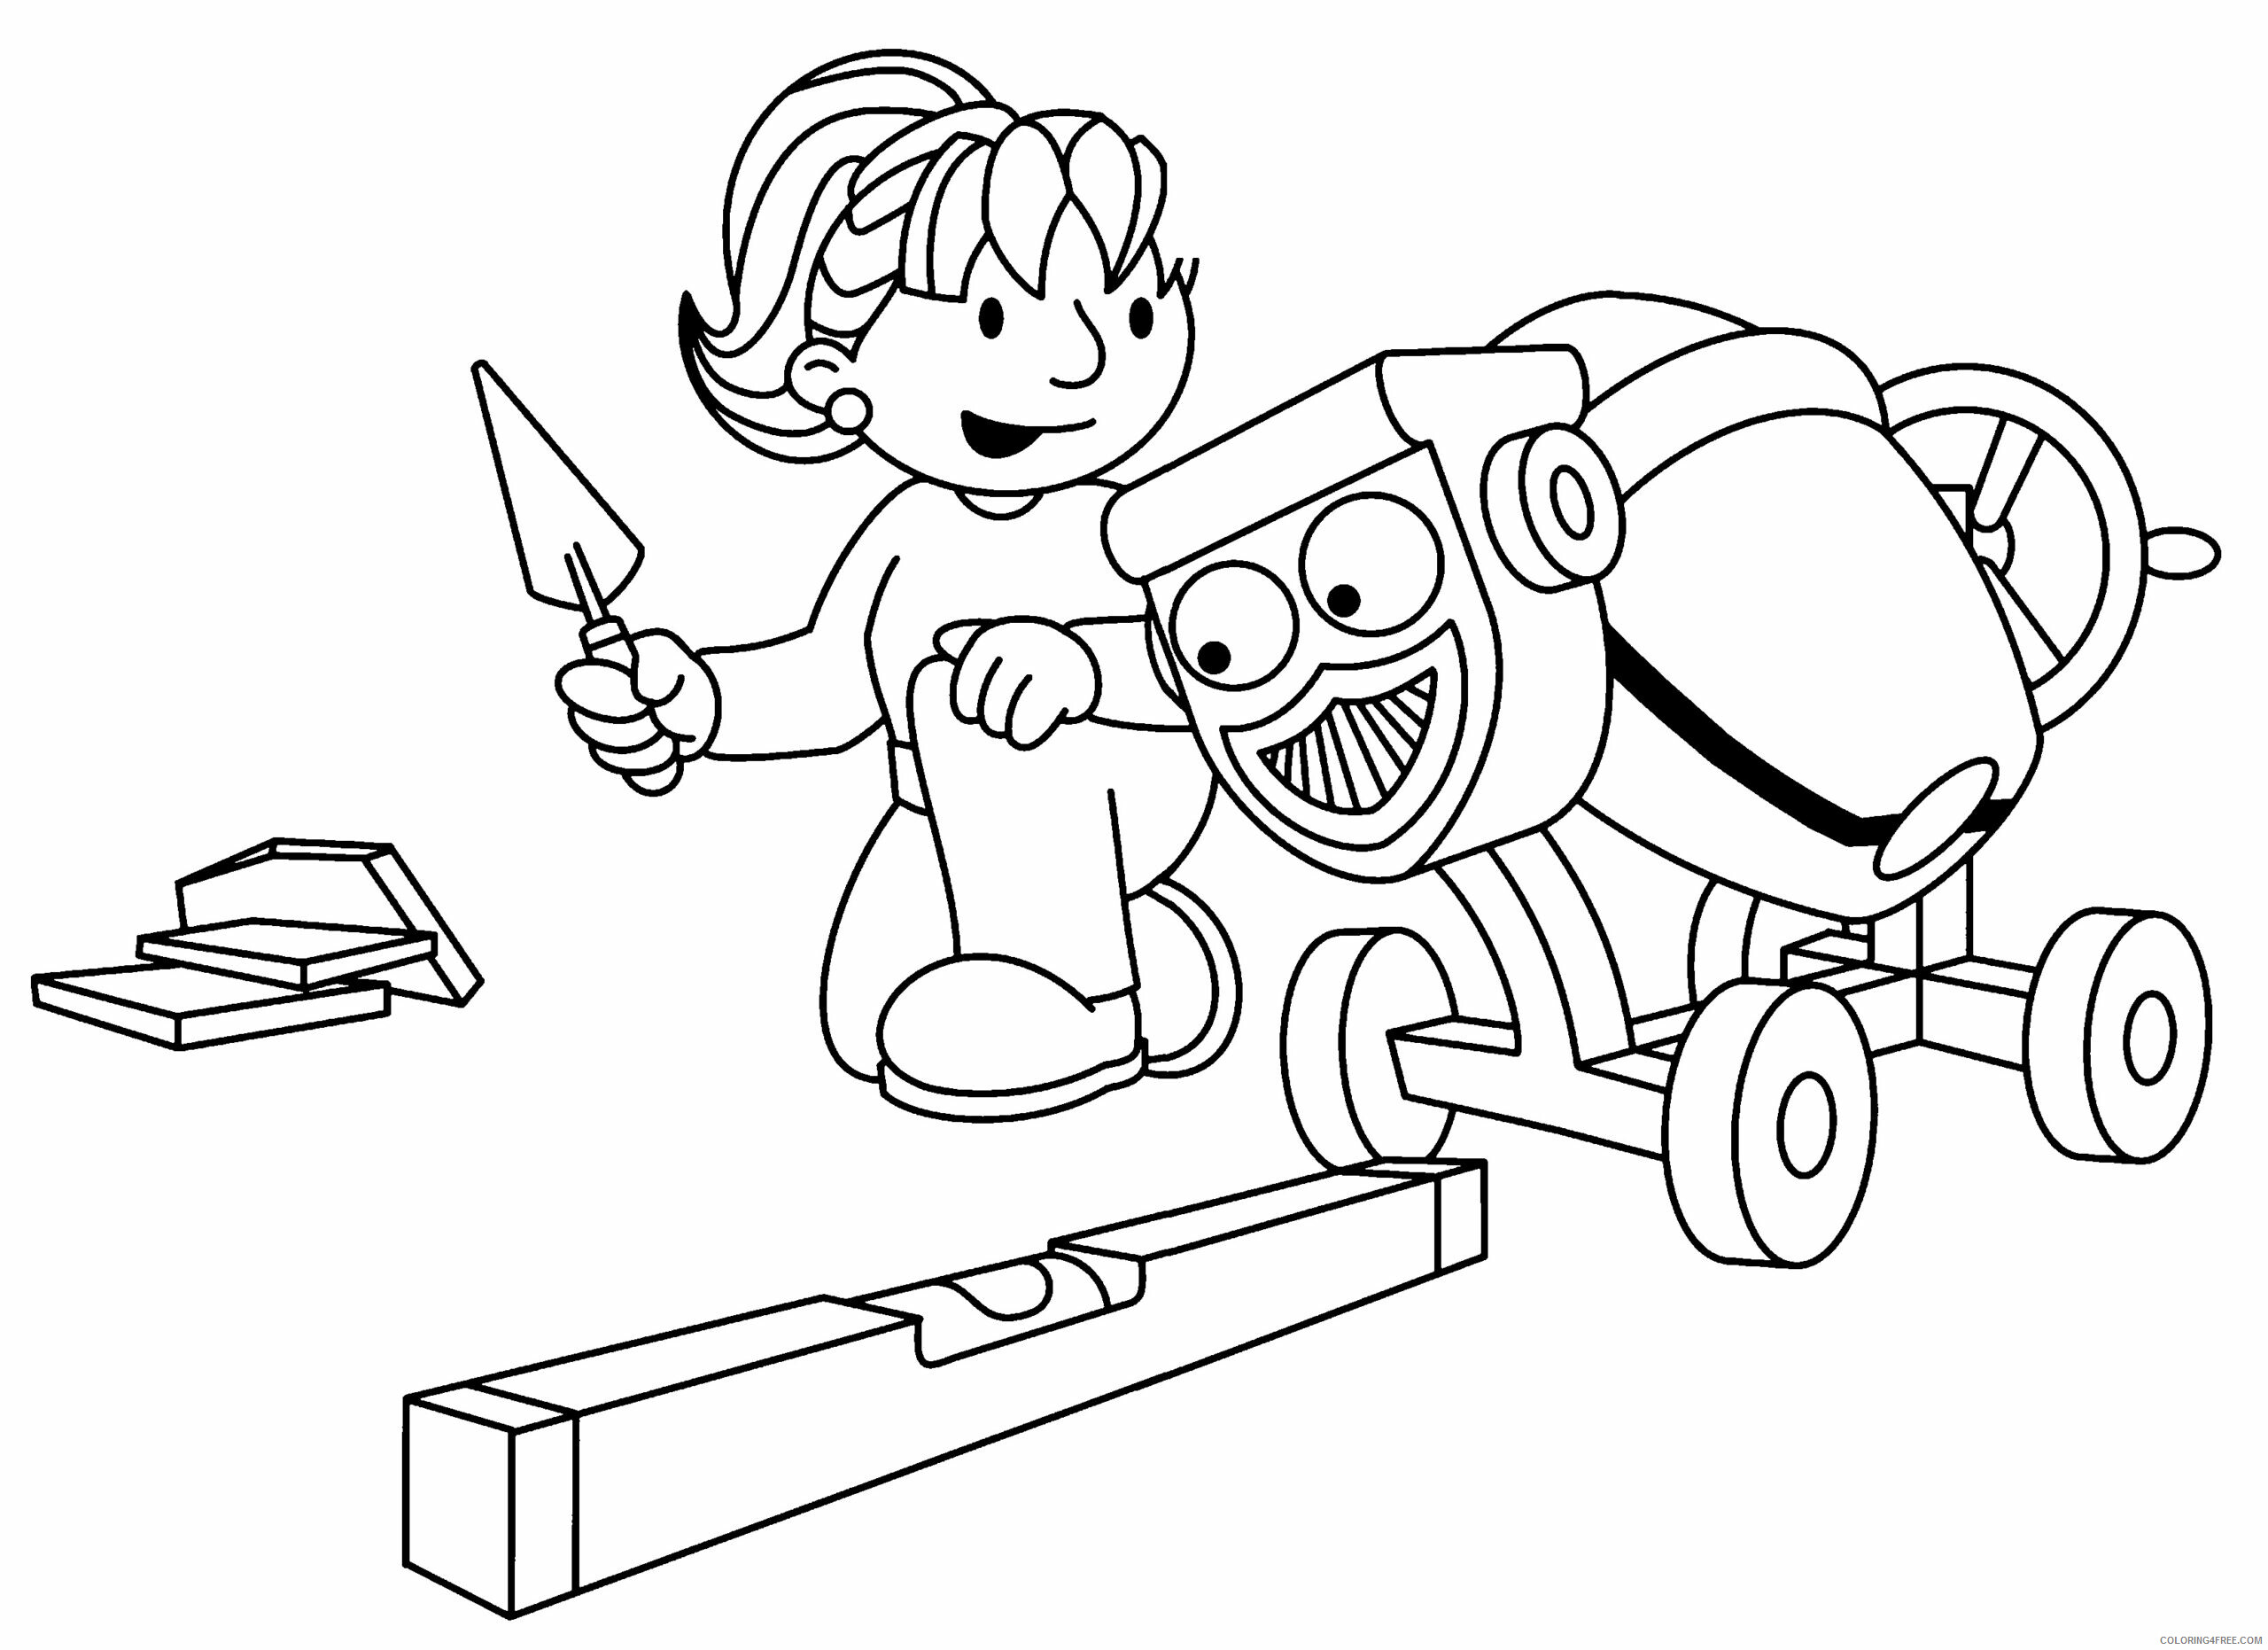 Bob the Builder Coloring Pages TV Film bob the builder 64 Printable 2020 01086 Coloring4free